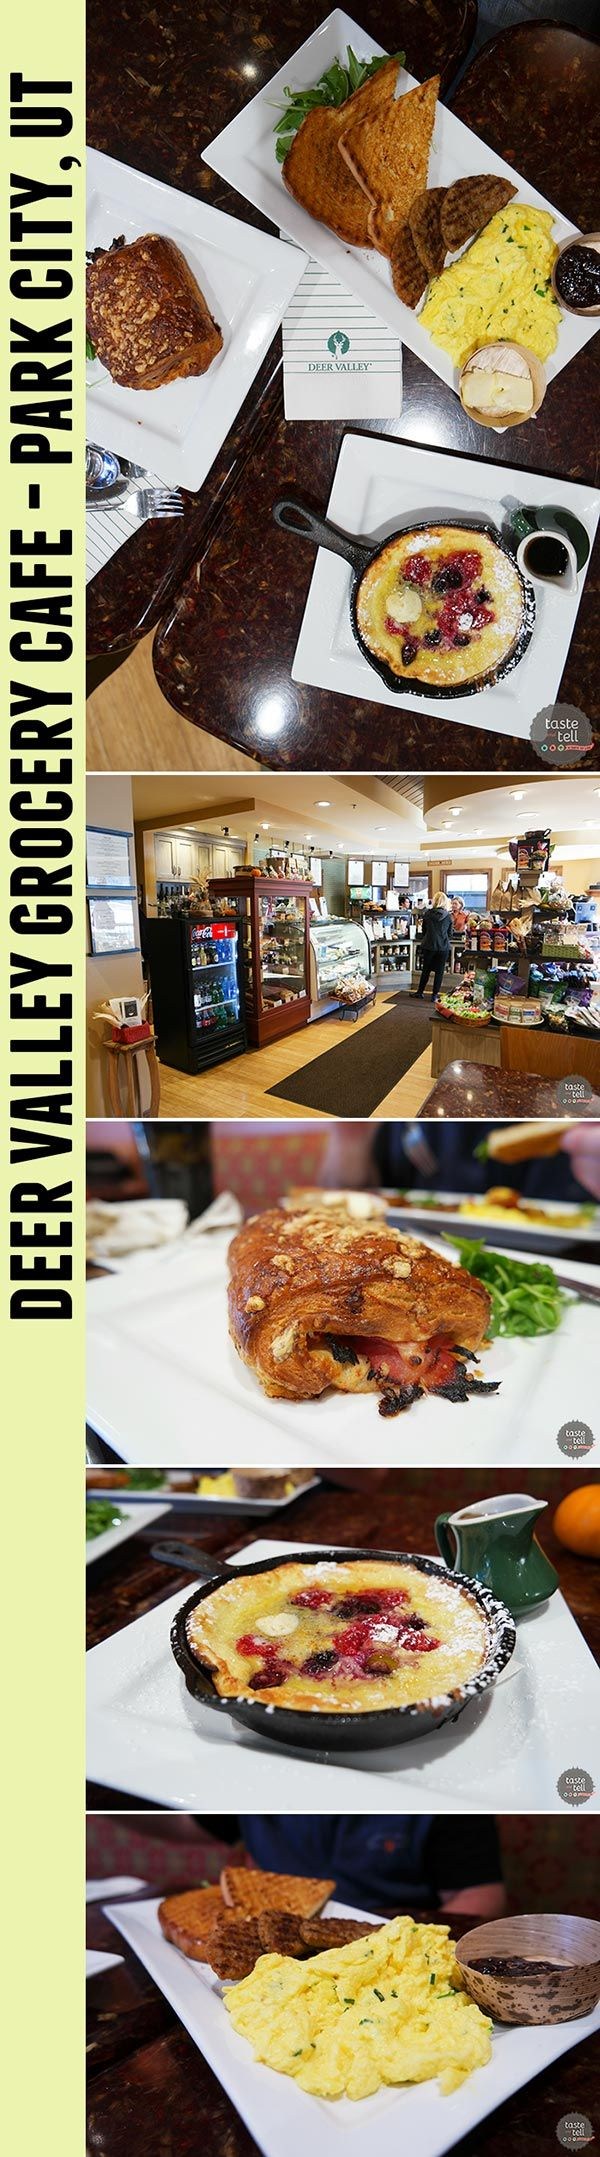 Deer Valley Grocery Cafe - at Deer Valley Resort in Park City, Utah. The perfect spot for breakfast before a big ski day!